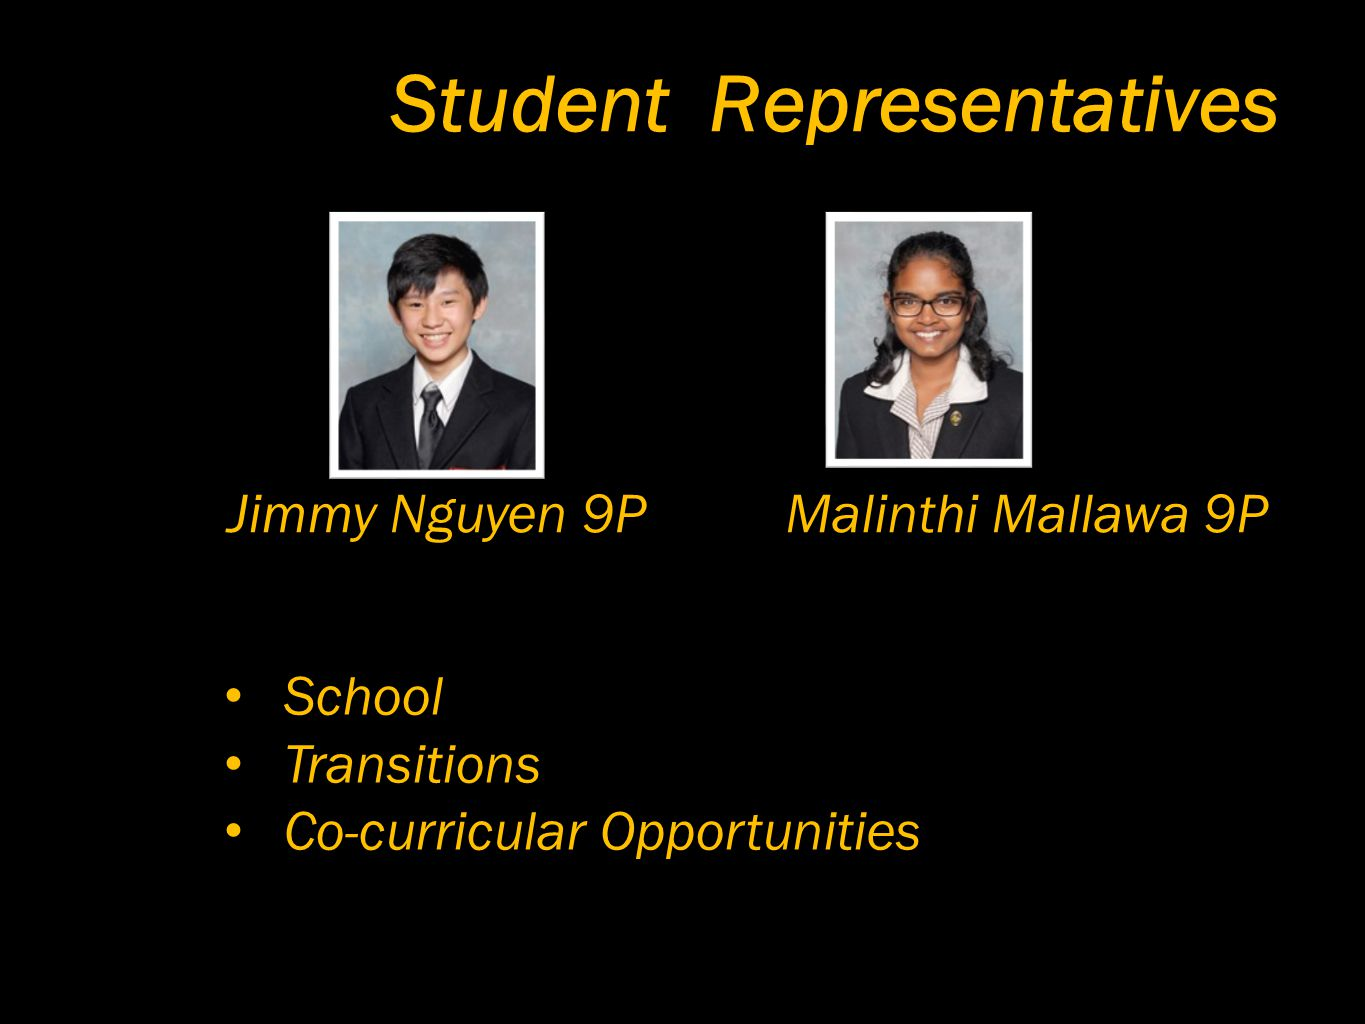 Student Representatives Malinthi Mallawa 9P School Transitions Co-curricular Opportunities Jimmy Nguyen 9P